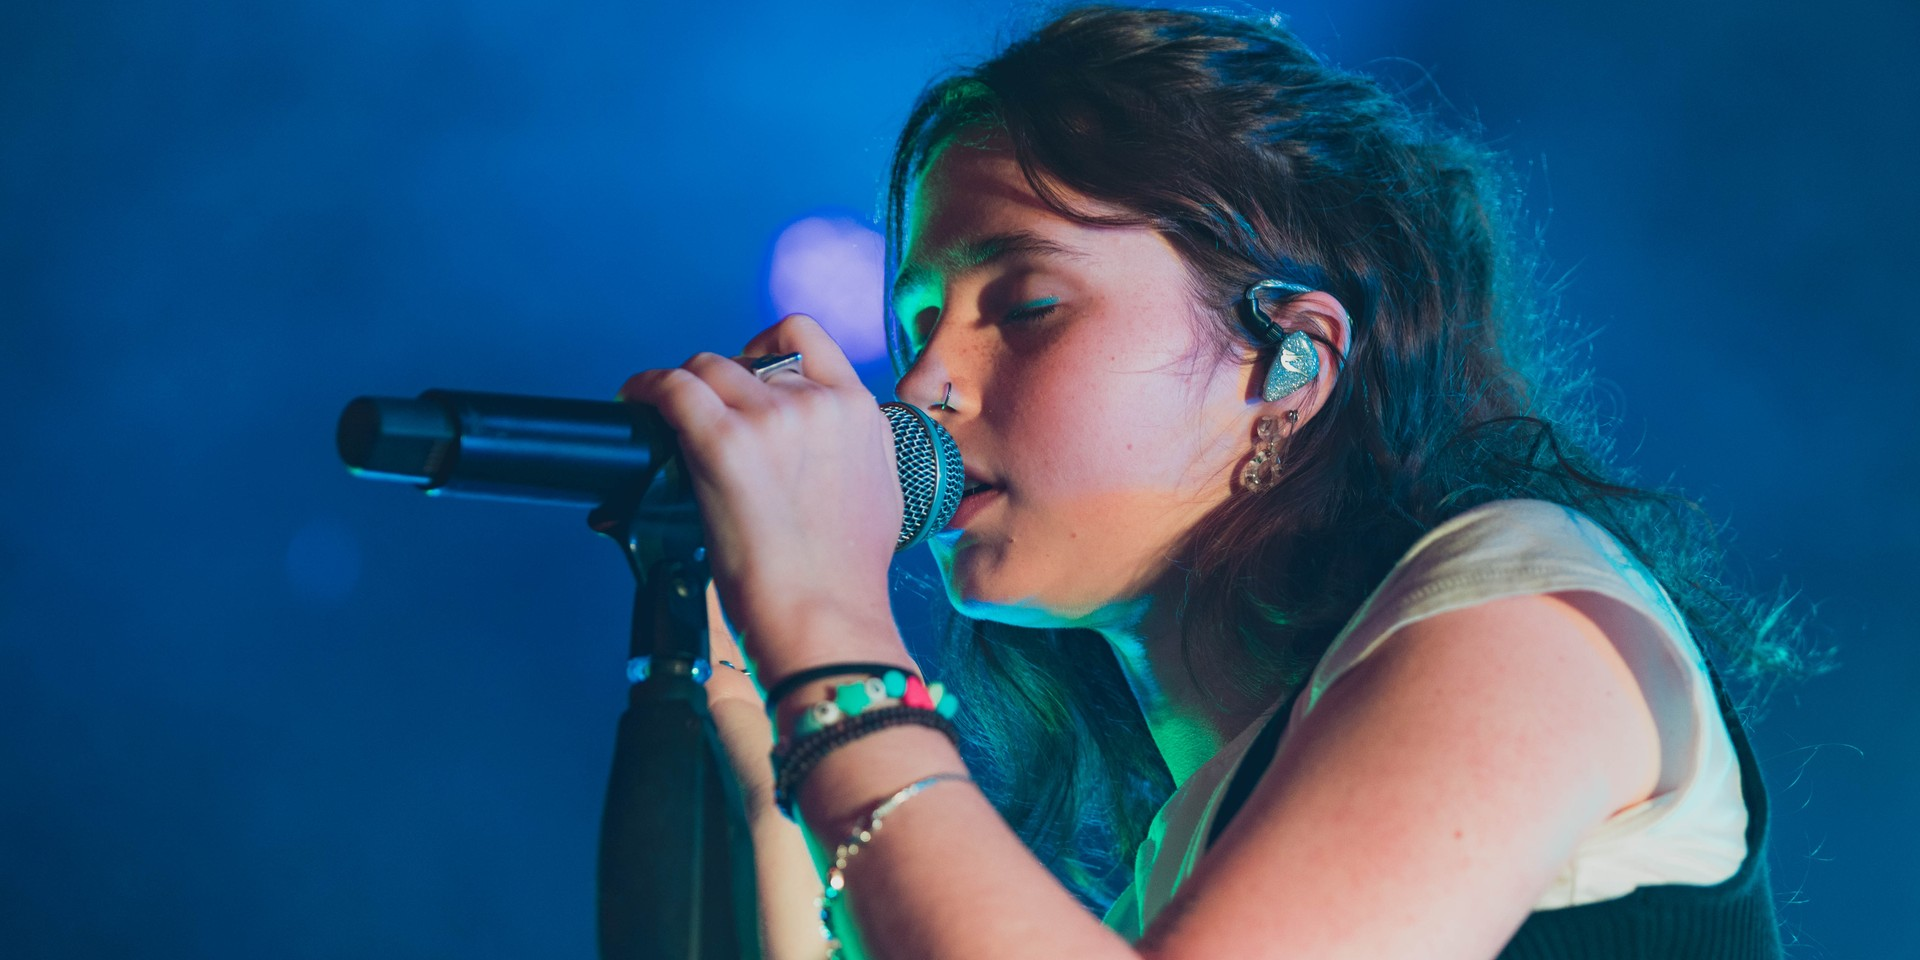 Clairo charms at debut Singapore show – photo gallery